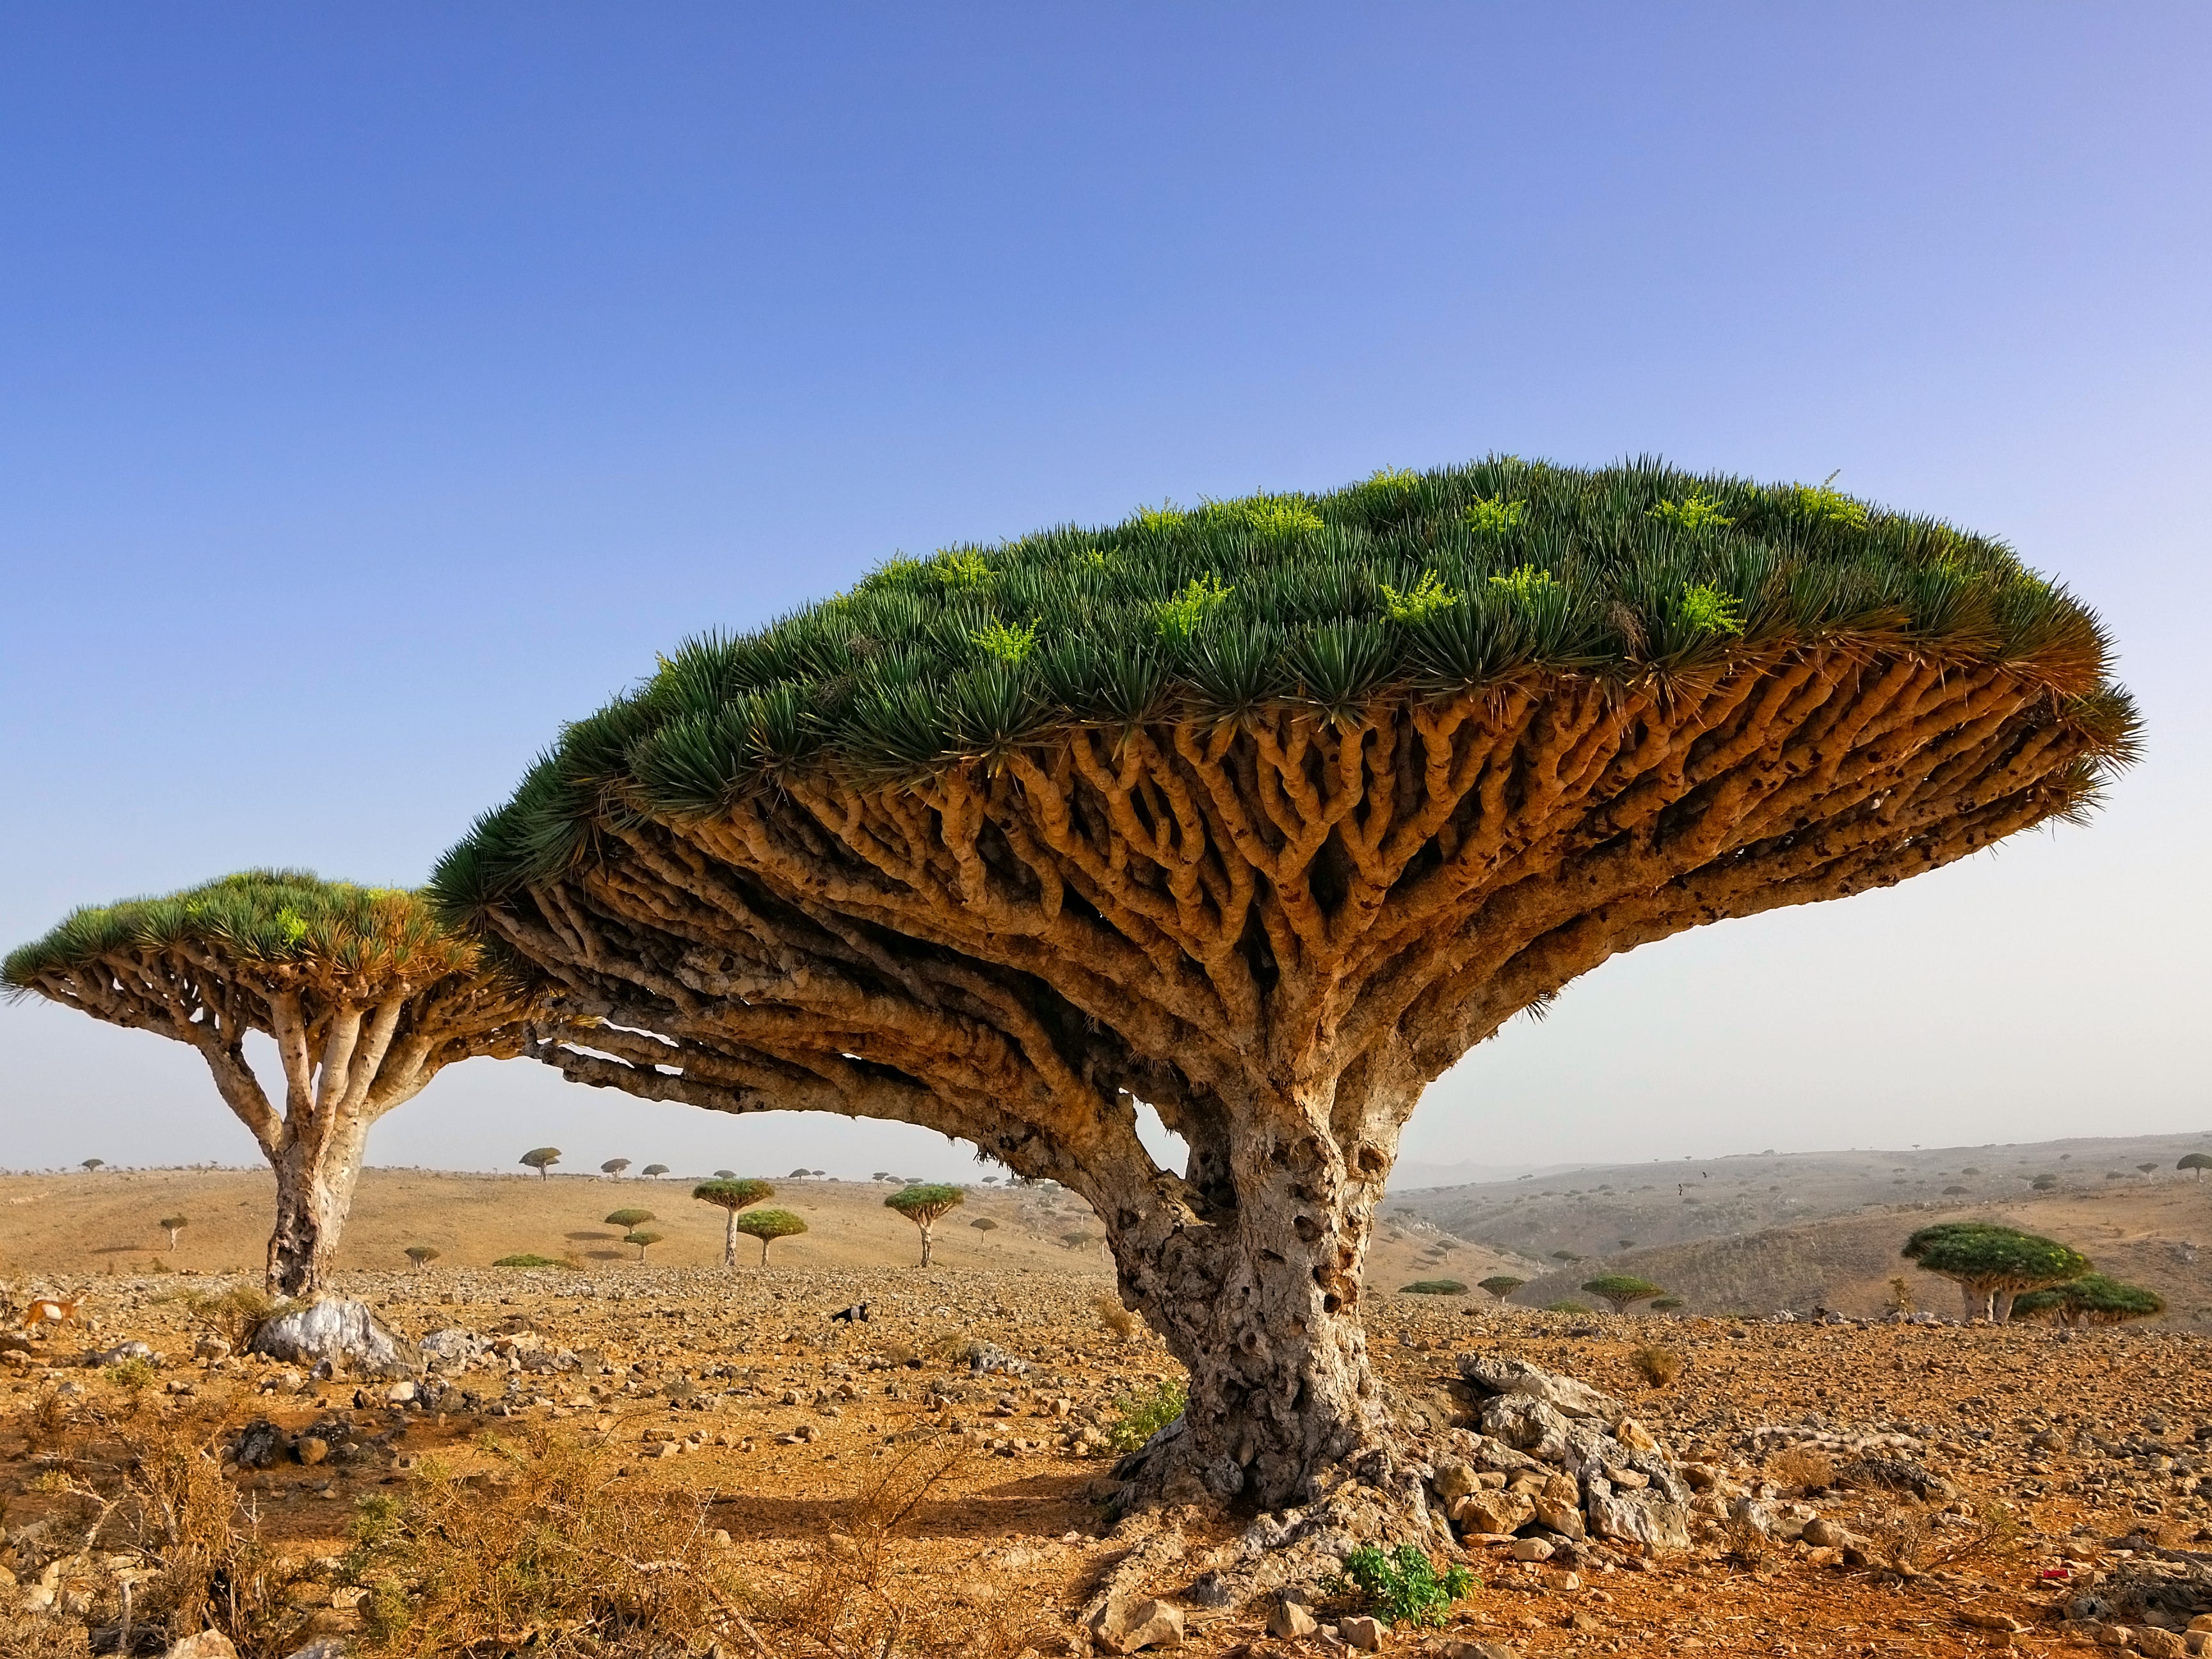 Slide 8 of 51: Located in the Indian Ocean, the island of Socotra has plant life that's found nowhere else on the planet. One of the more notable species is the dragon's blood trees. Their canopies look like flying saucers.